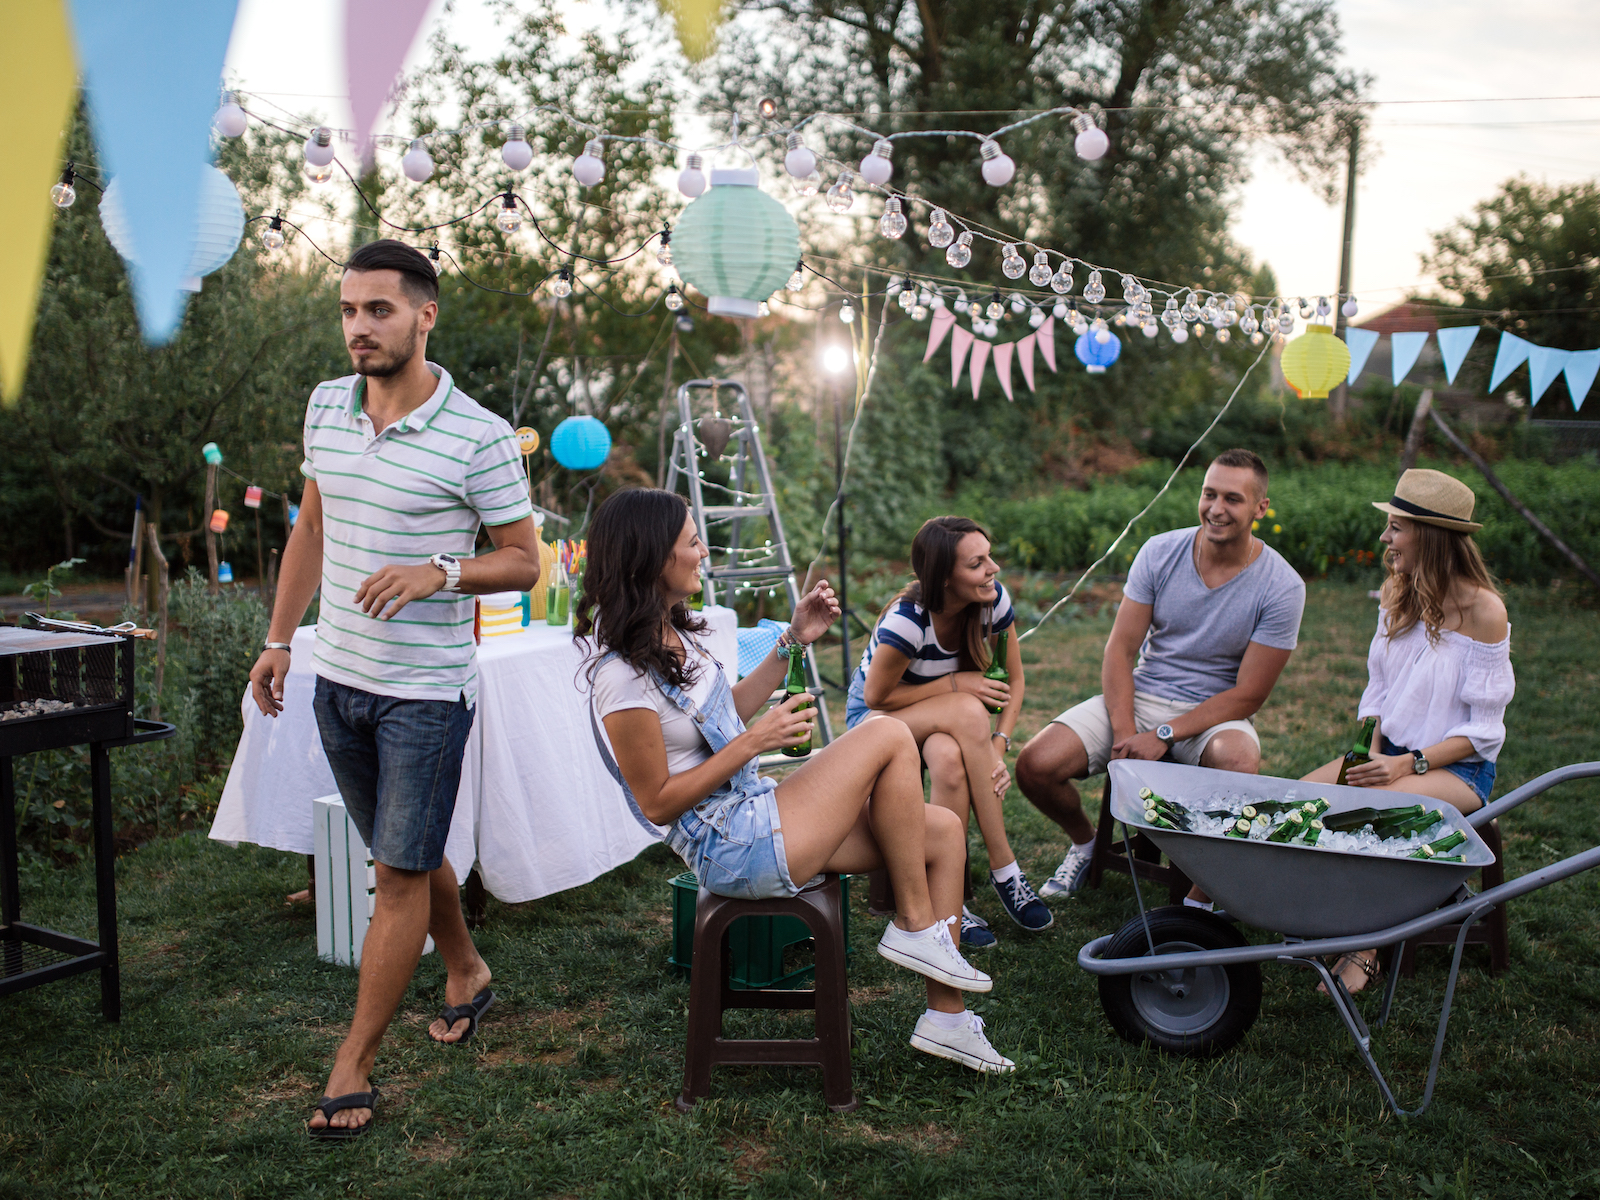 Outdoor party appliances